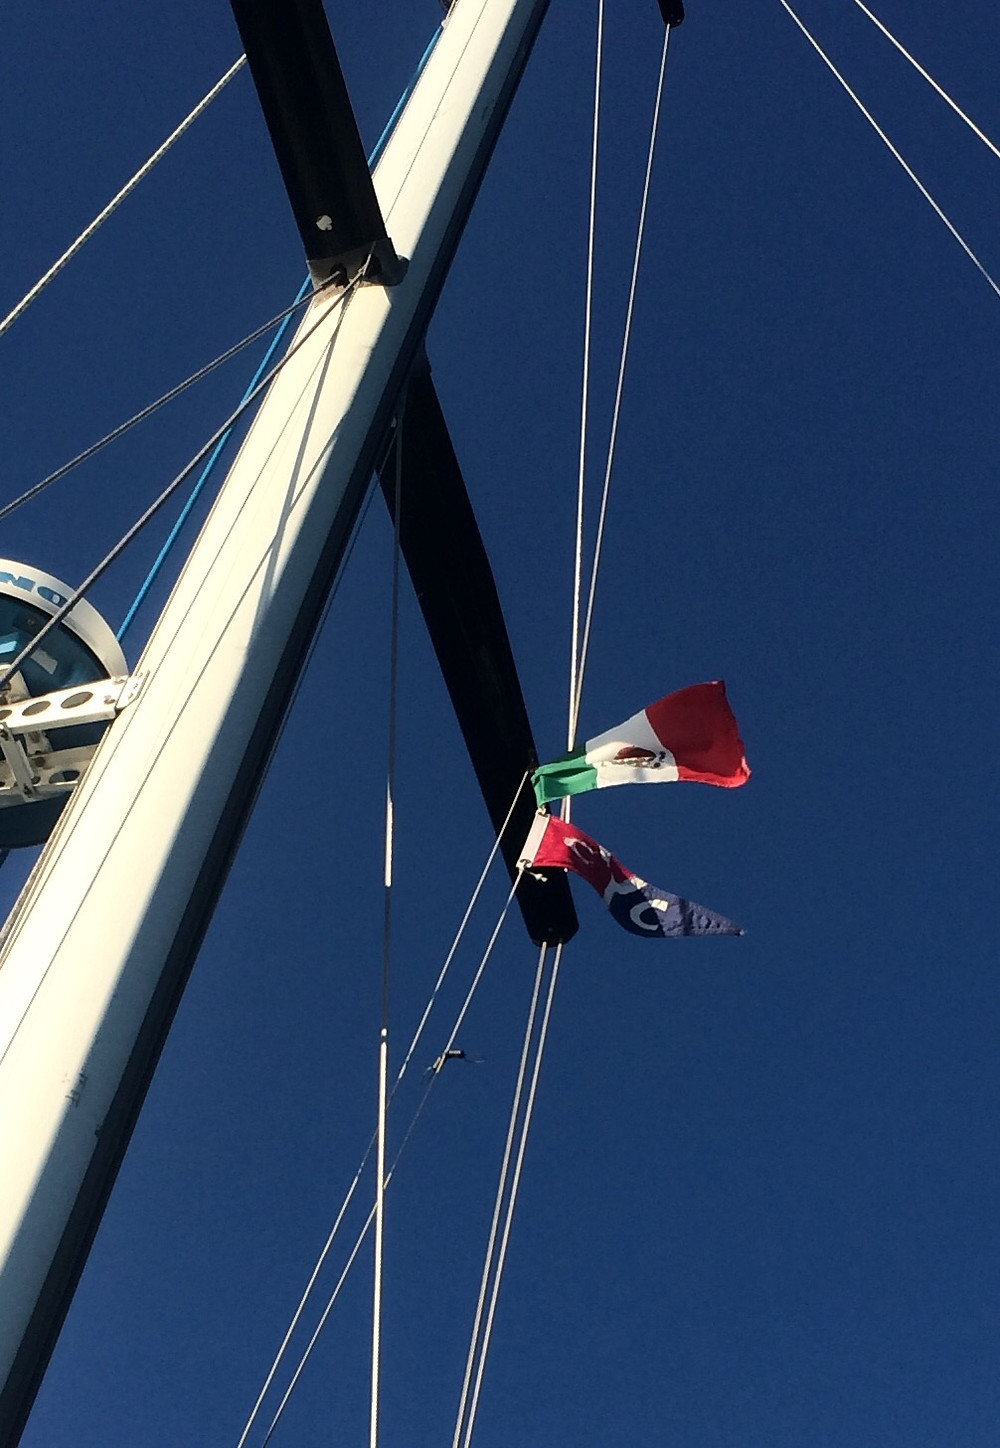 Flying our CYC burgee and Mexico courtesy flag.